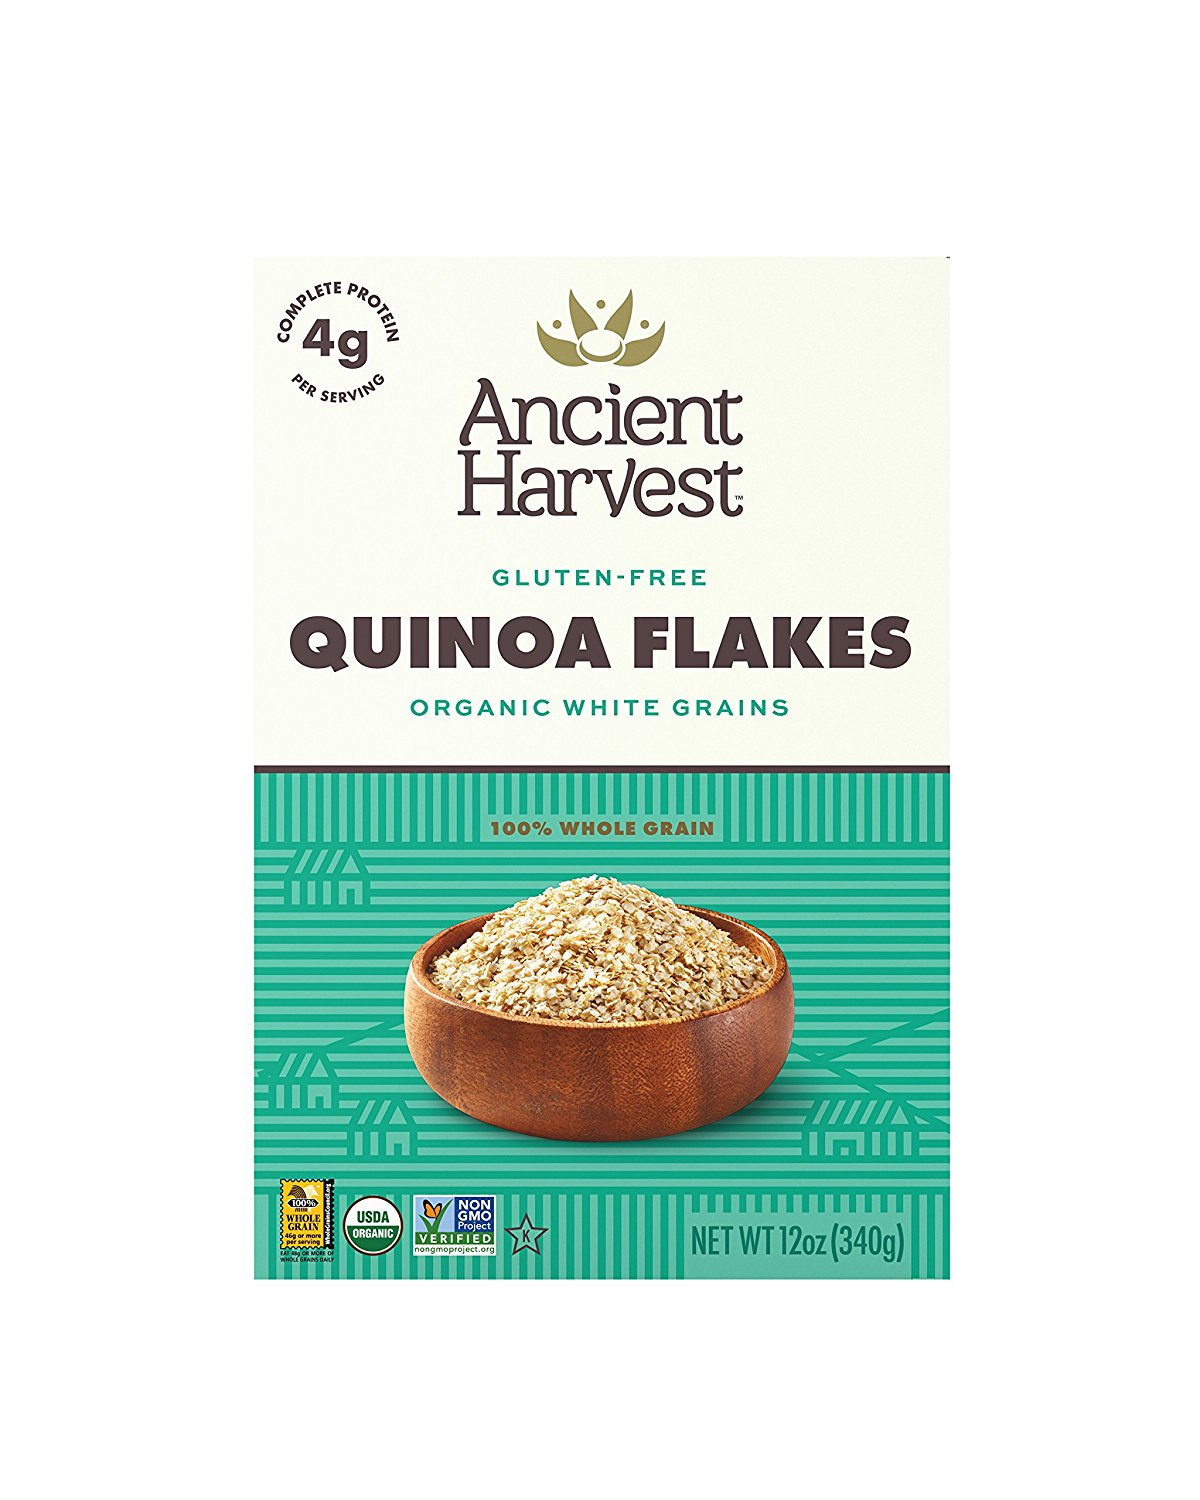 Ancient Harvest Organic Quinoa Flakes Cereal, 12 Ounce (Pack of 6) - Buy Fast delivery